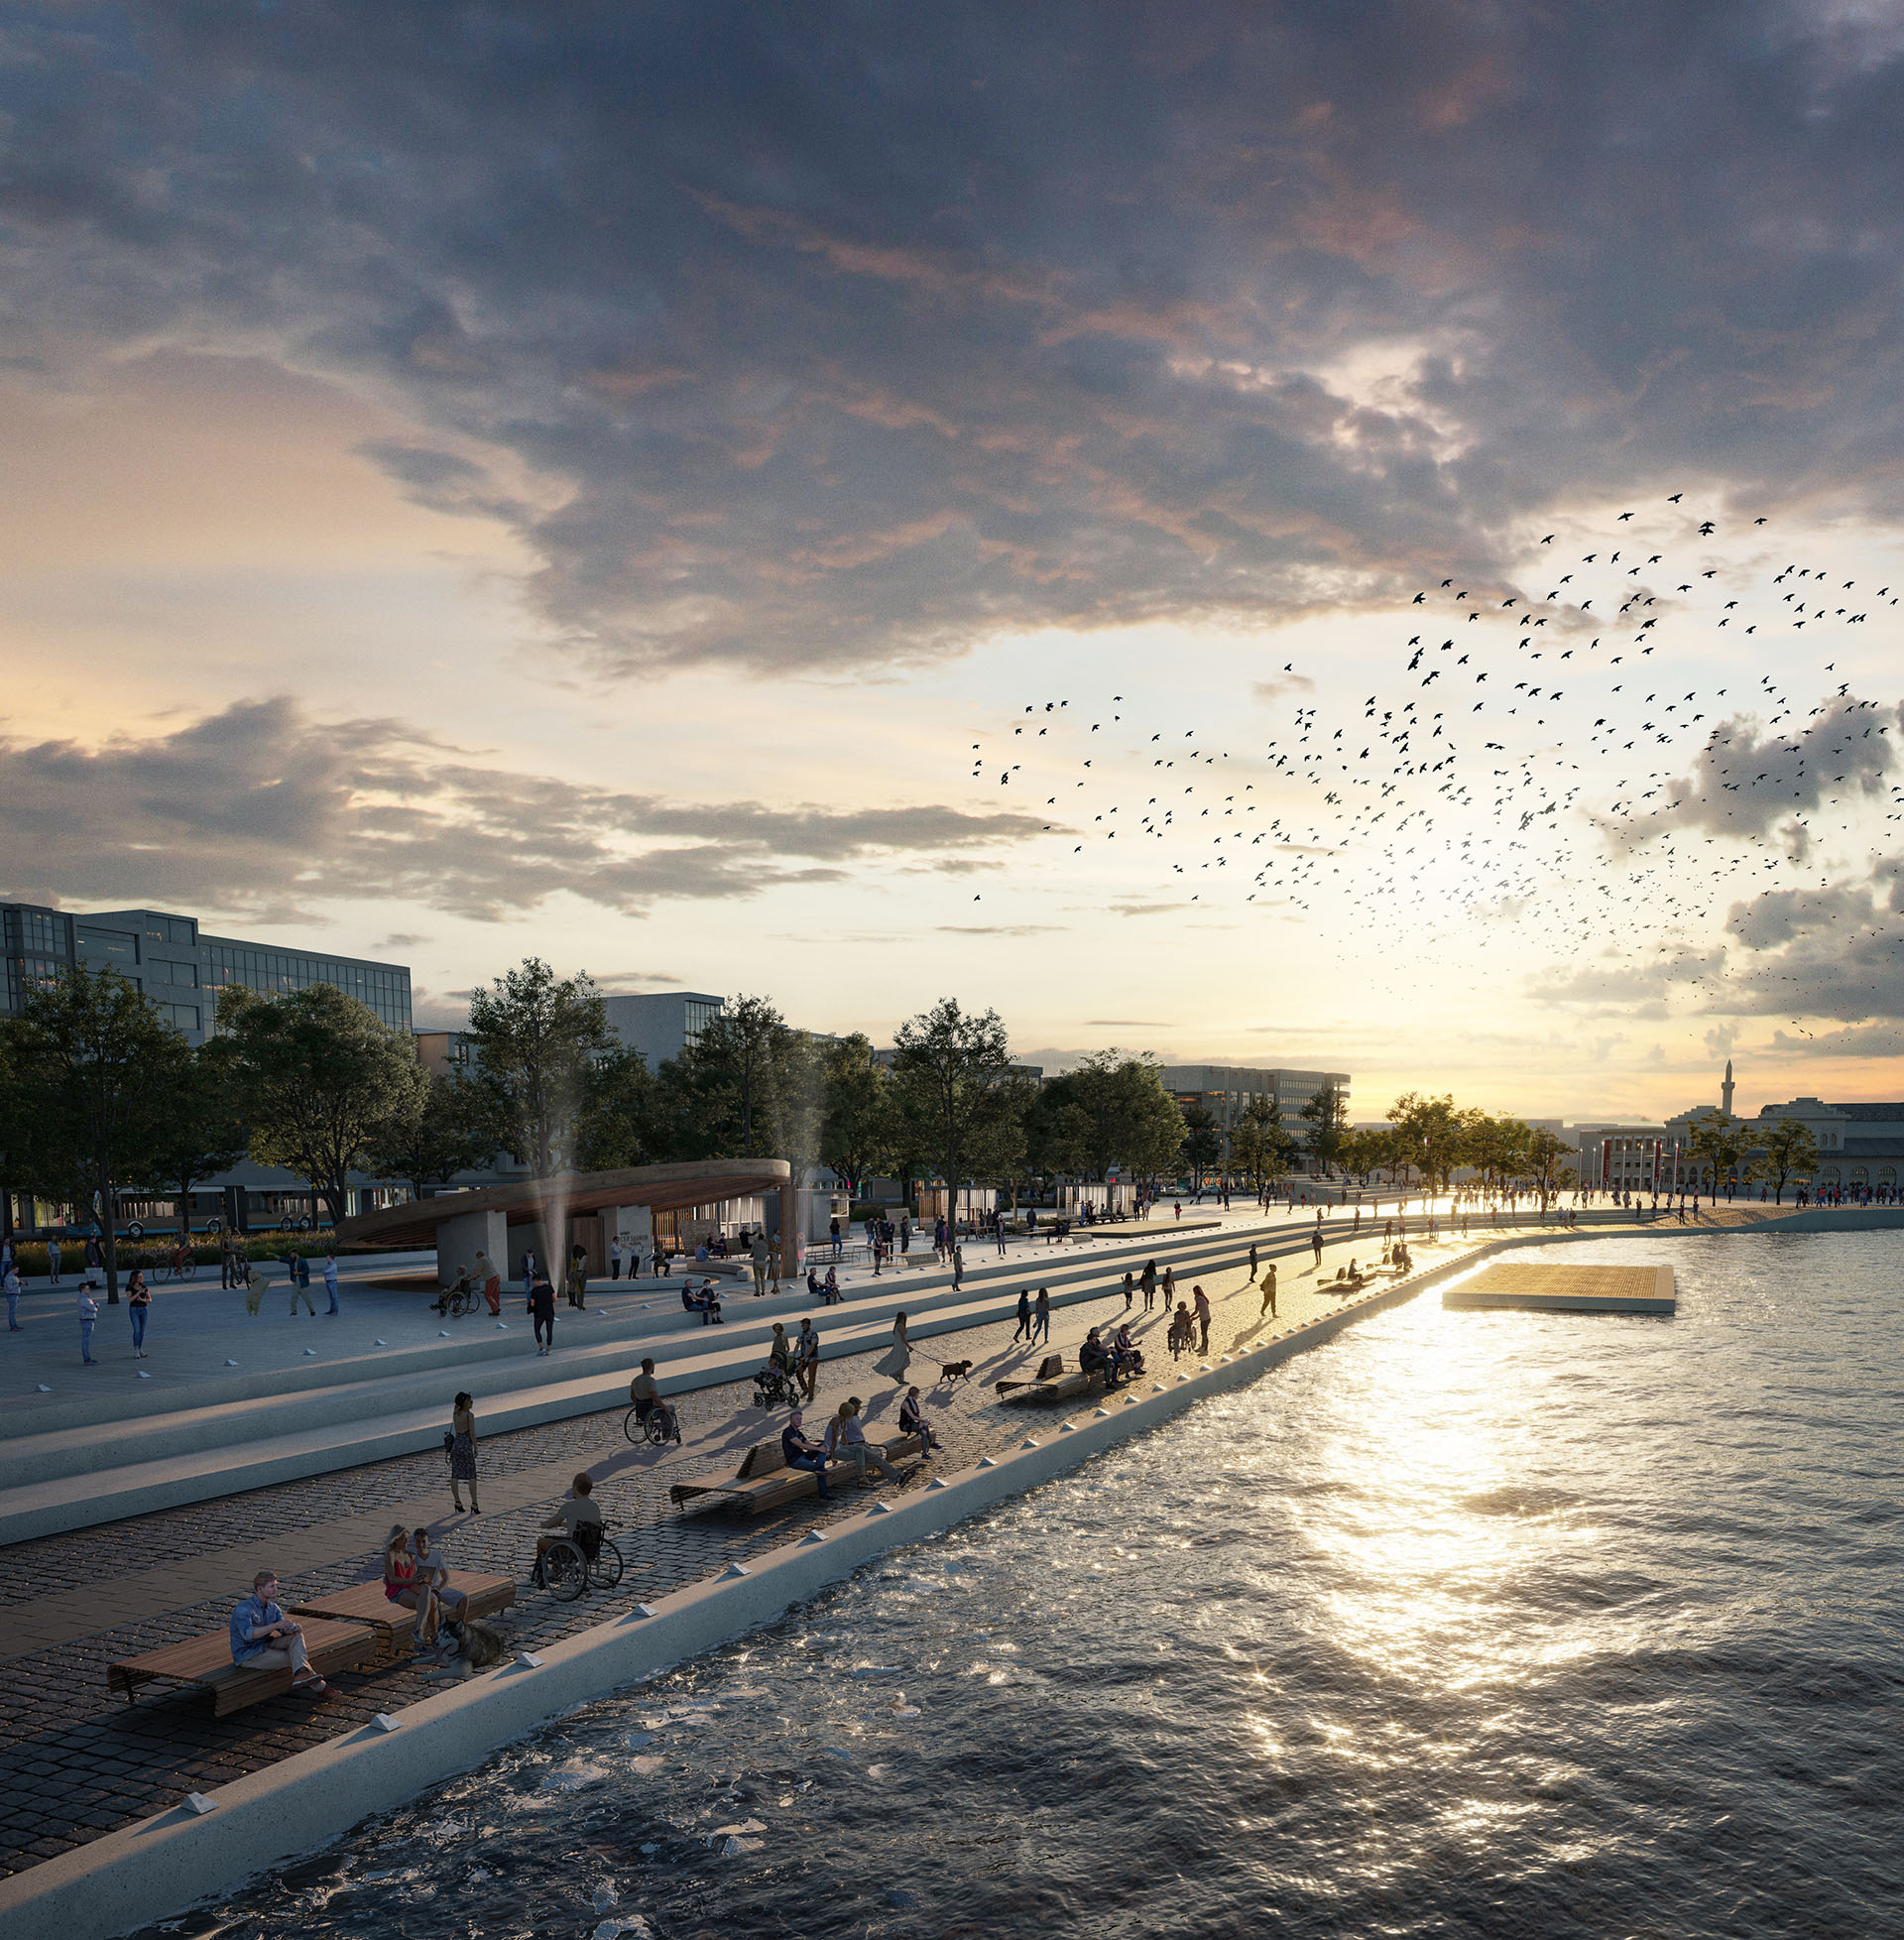 render_ivabox_CAPS_istanbul_kadikoy_Competition_3